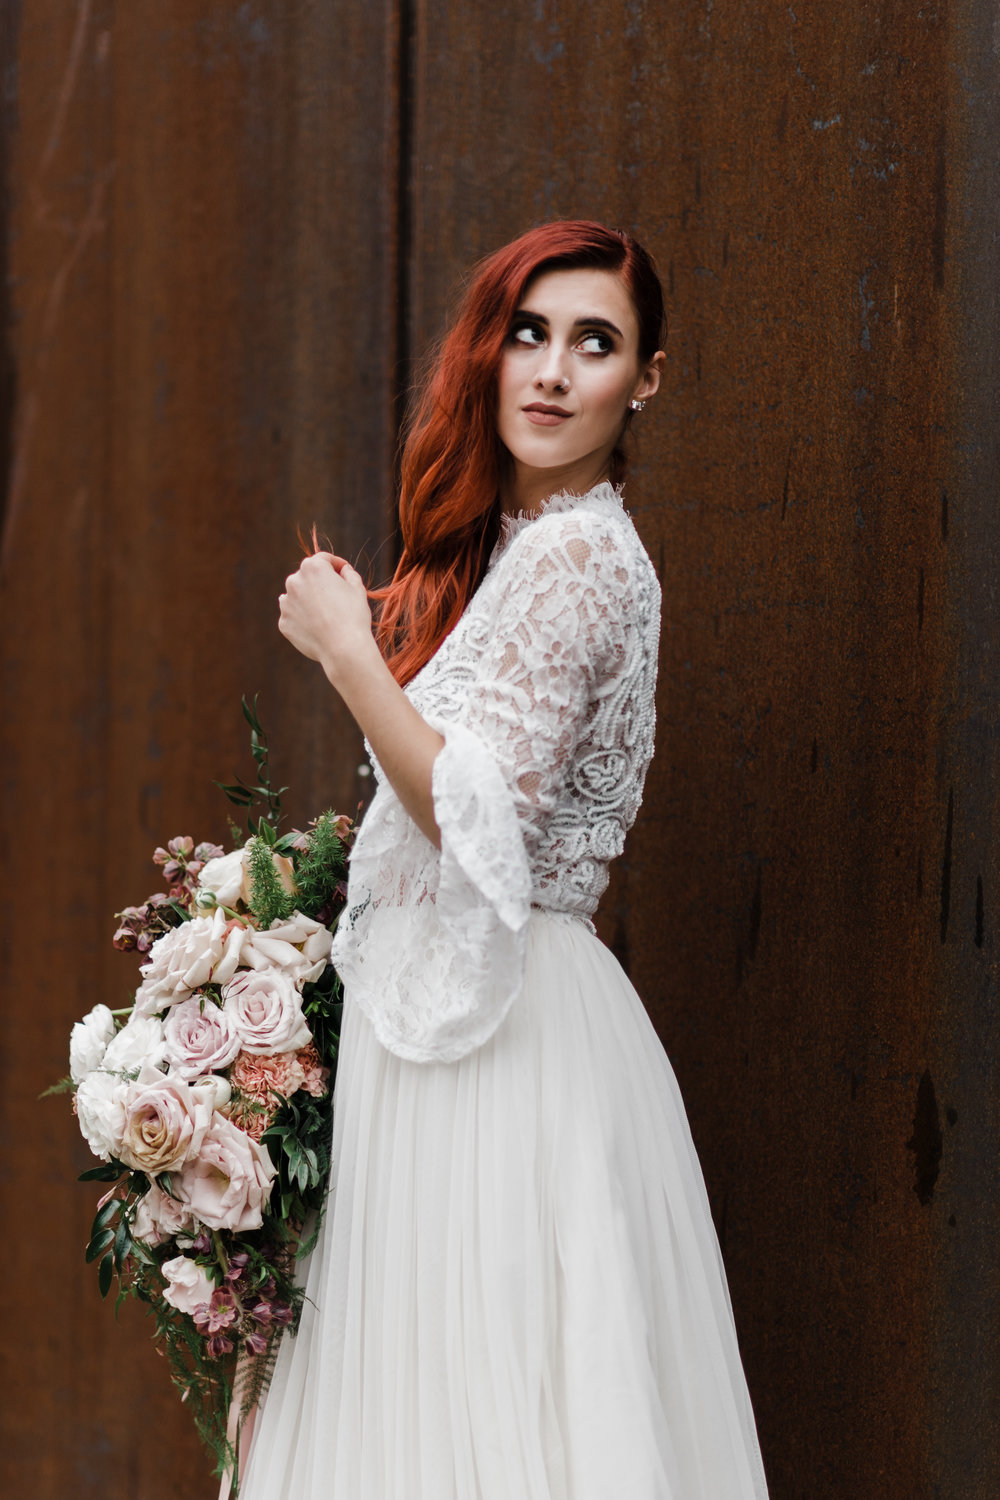 Bride in lace and beaded crop top and flowing skirt holding bouquet and standing in front of a rusty metal wall.